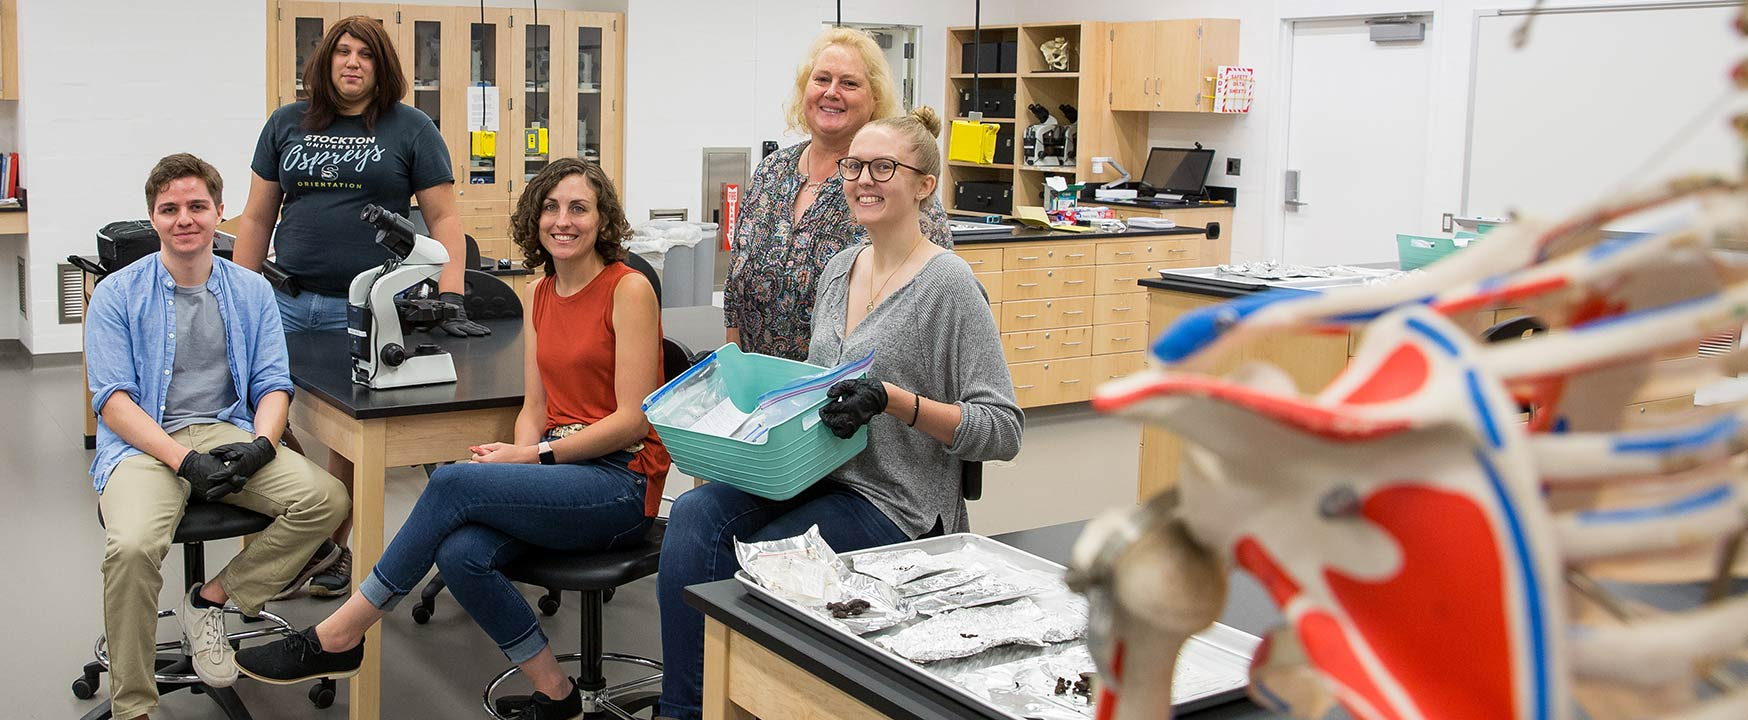 From left, Joseph Ross, Jennifer Rios, Professor Hornbeck, Anne LoDico and Carly Hammartstrom take a break from sifting through samples Hornbeck collected in the western Aleutian Islands of Alaska.